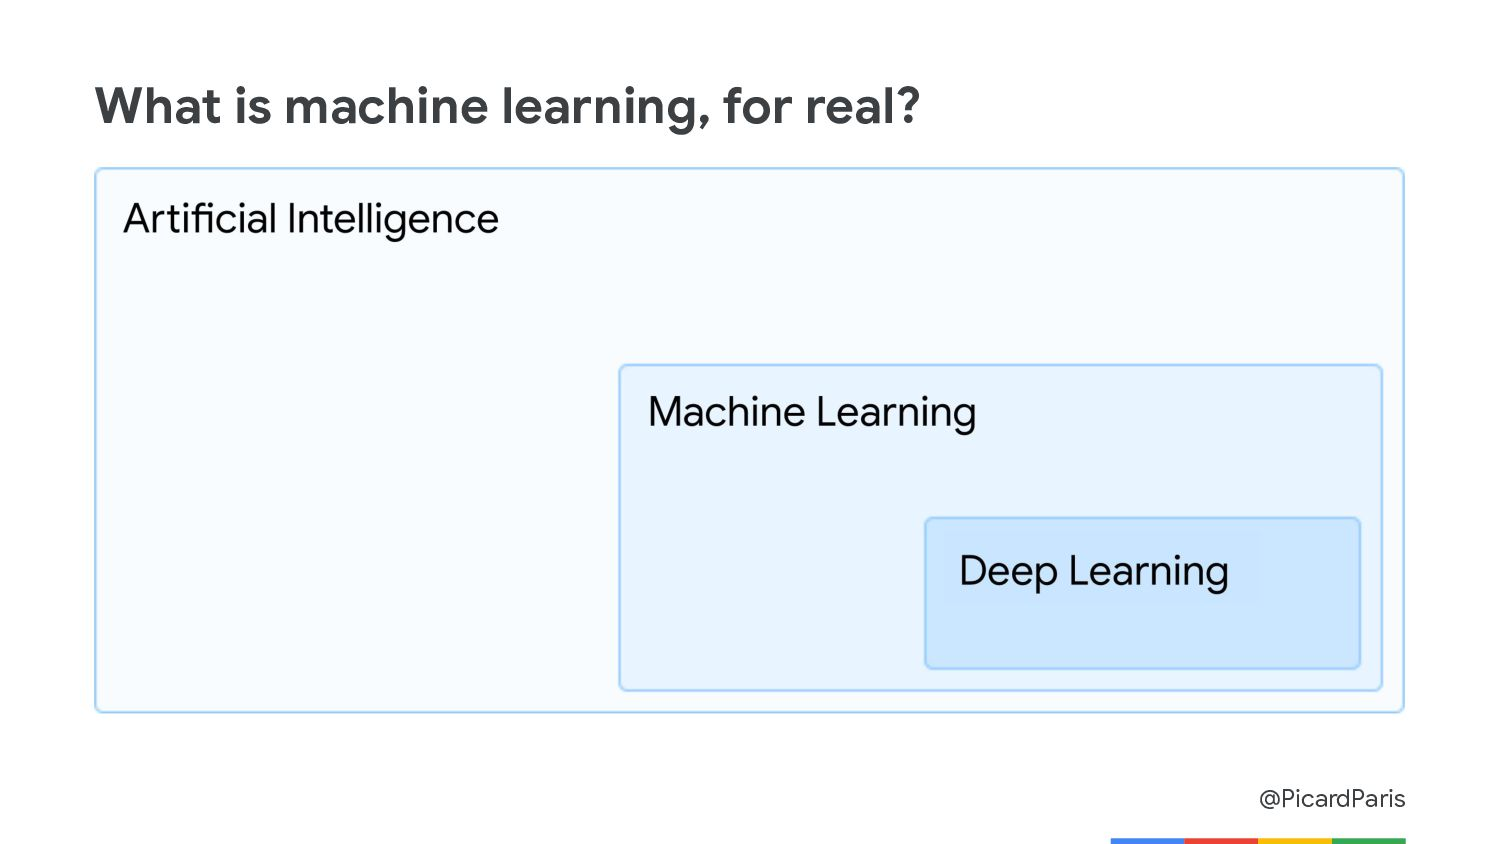 @PicardParis What is machine learning, for real?